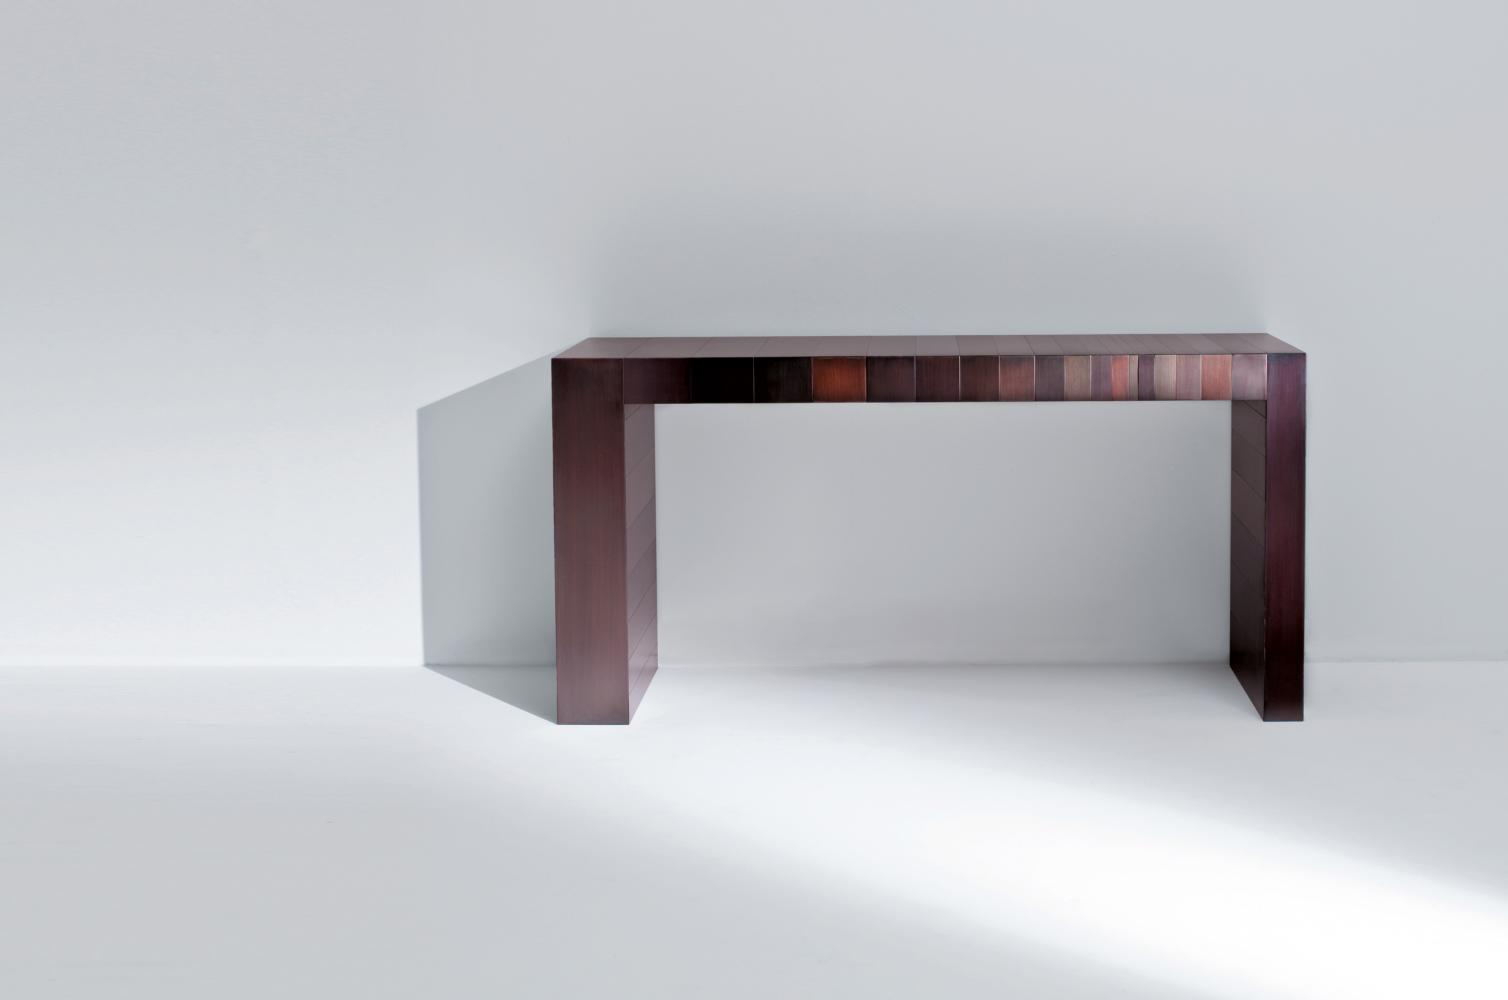 ST 21 Luxury modern console table cladded in burnished copper